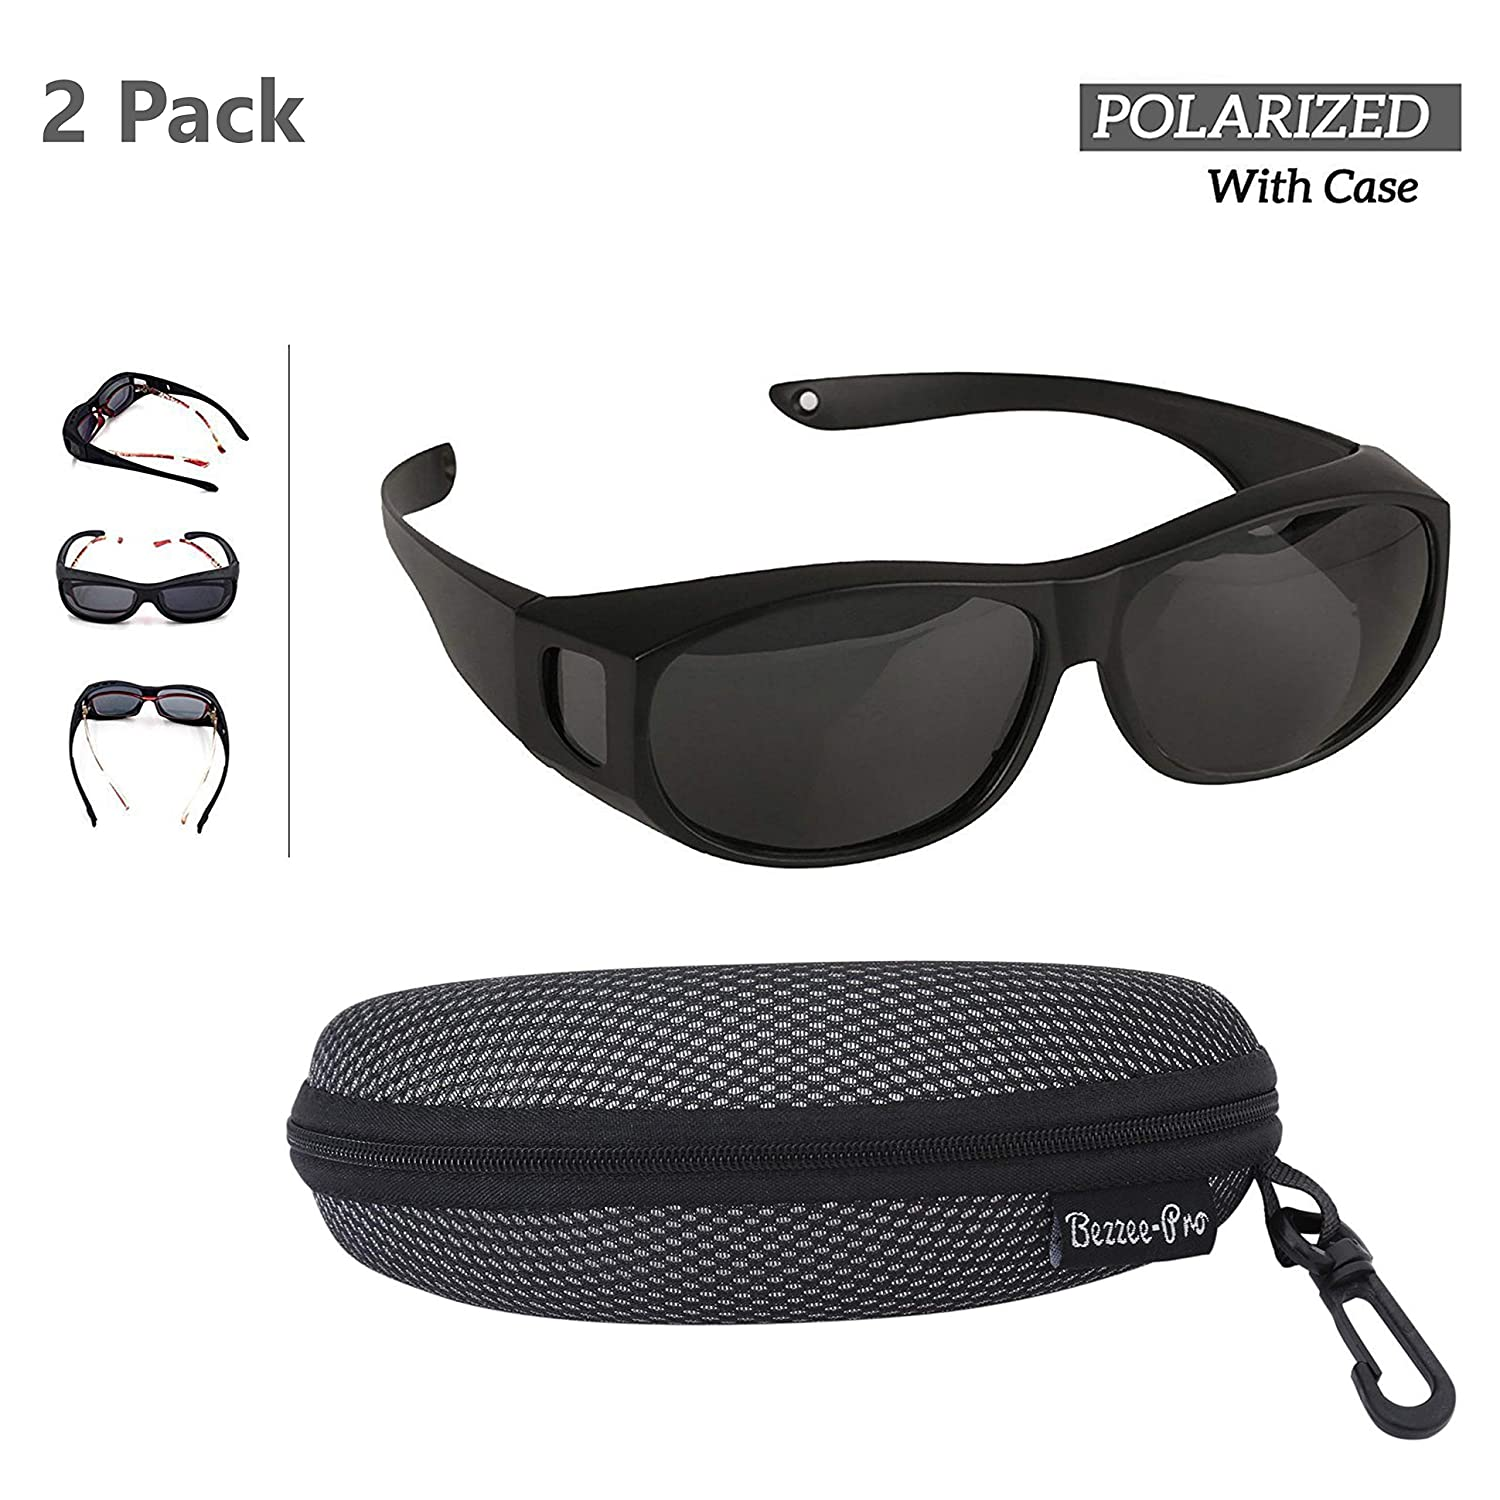 Polarized Wear Over Sunglasses Men and Women Adult Size Lightweight Cover For Regular Eye Glasses and Prescription Glasses To Reduce Glare Comfortable Best For Bike Riding